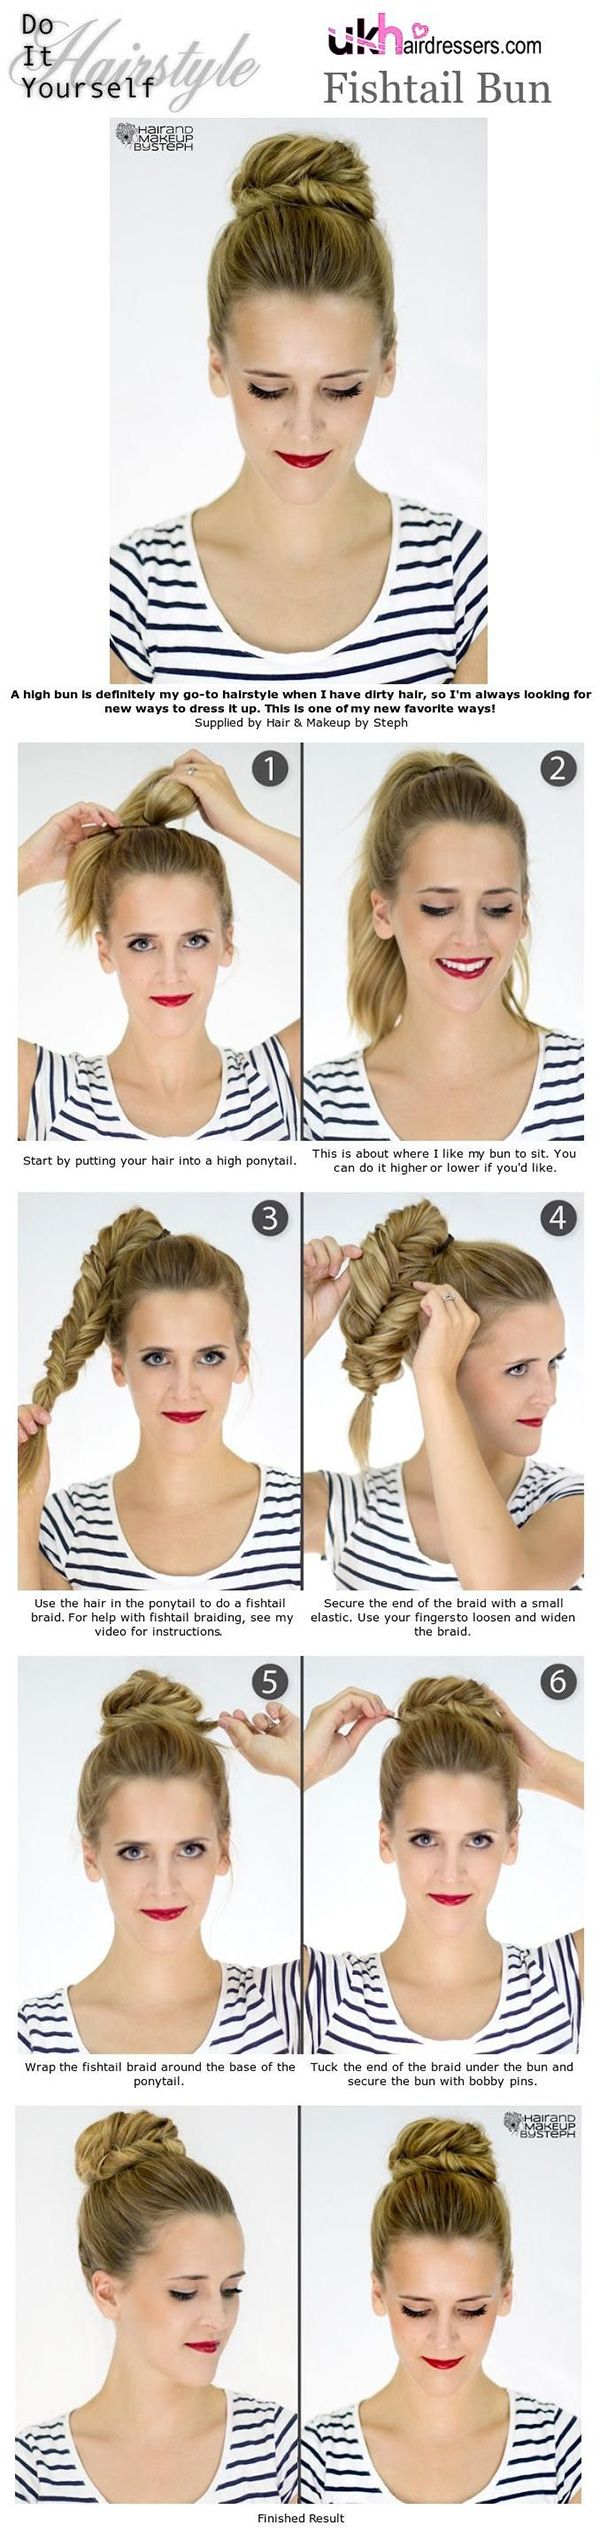 15 Easy No-Heat Hairstyles For Dirty Hair, Long Or Short | Gurl.com